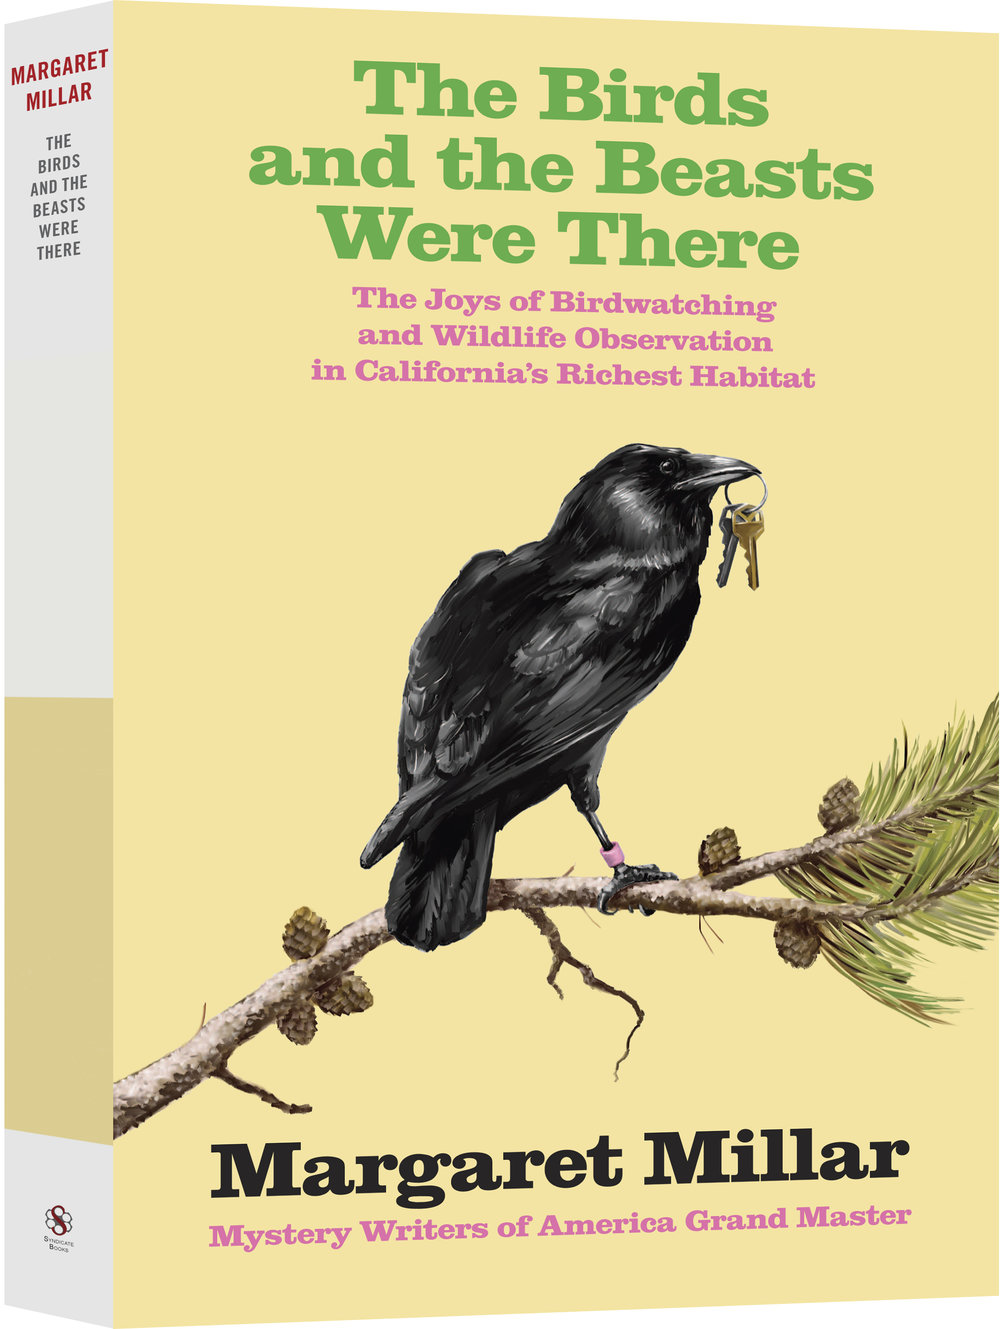 COLLECTED MILLAR: THE BIRDS AND BEASTS WERE THERE: THE JOYS OF BIRDWATCHING AND WILDLIFE OBSERVATIONS IN CALIFORNIA'S RICHEST HABITAT